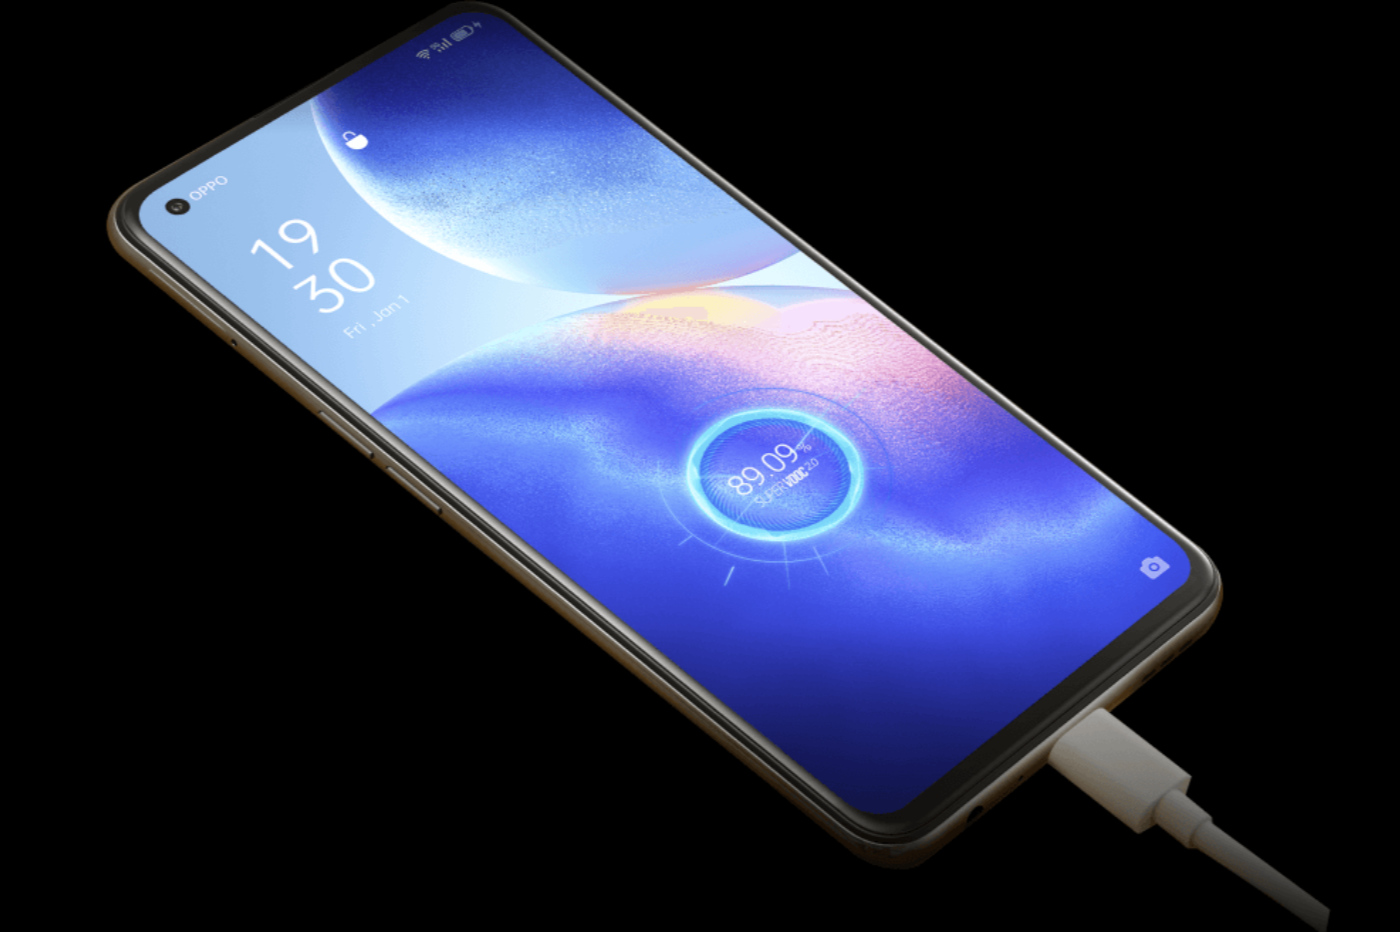 Find oppo x3 Lite Recharge